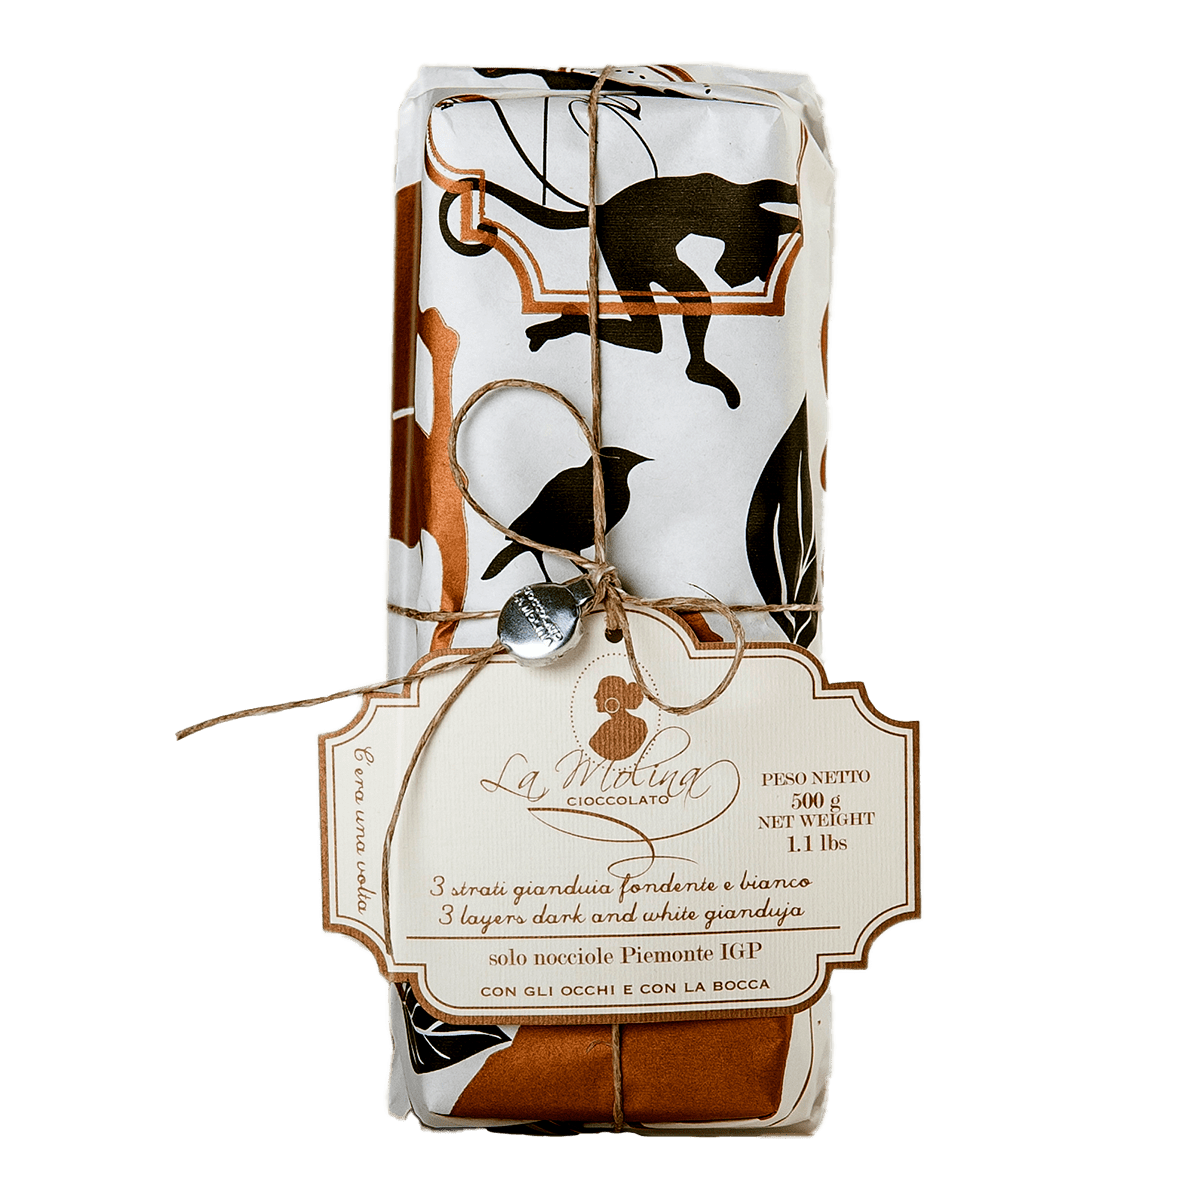 ONCE UPON A TIME dark and white gianduja